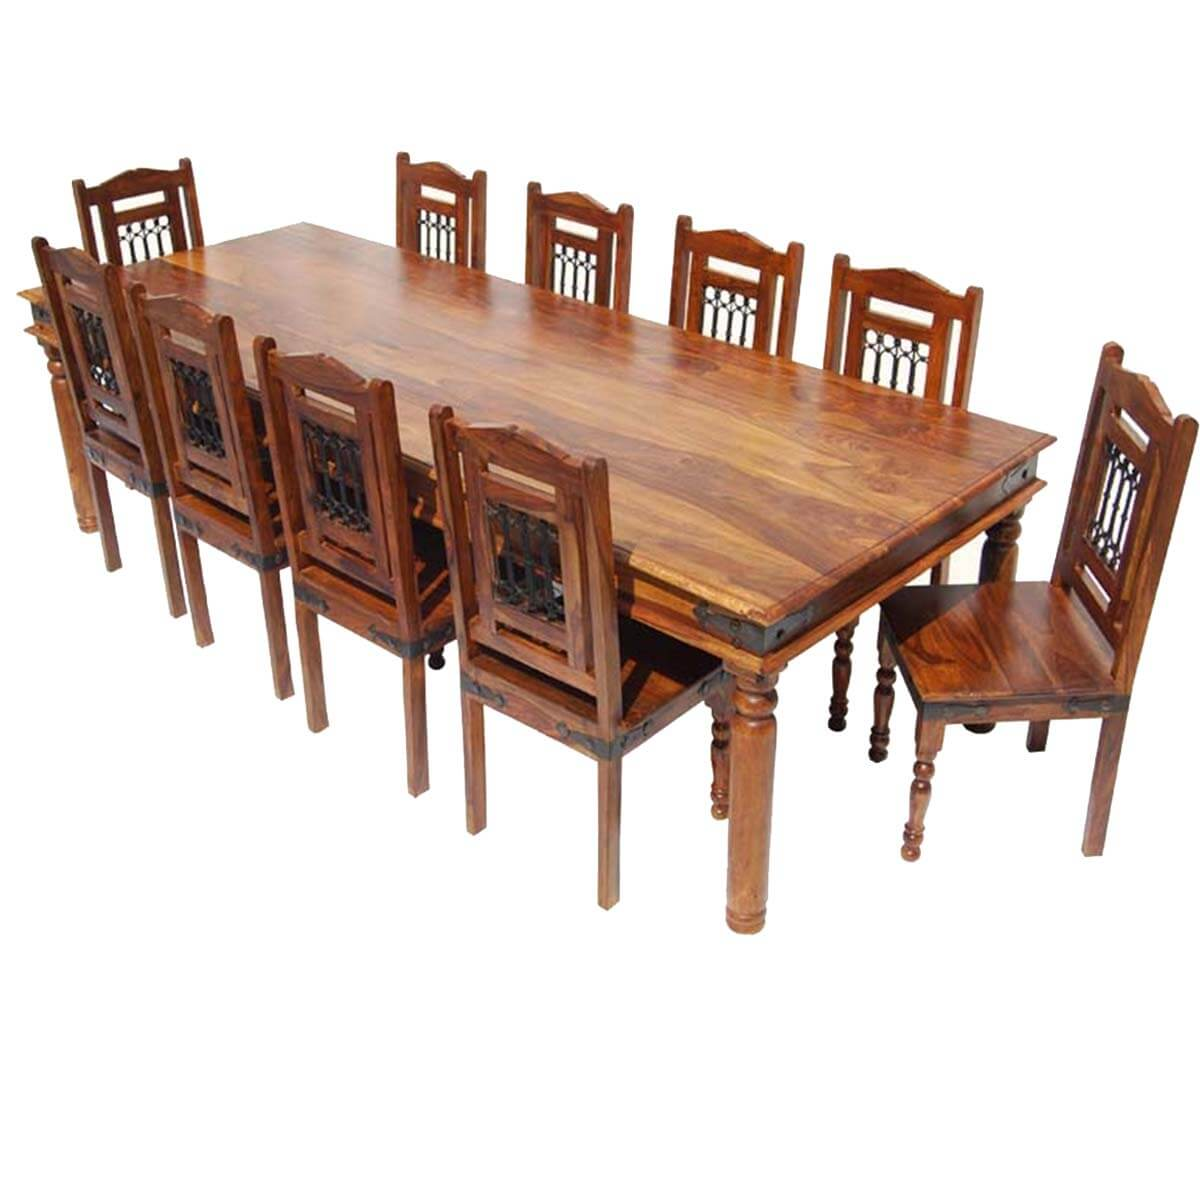 Wooden Dining Table Set ~ Solid wood large rustic dining room table chair sideboard set